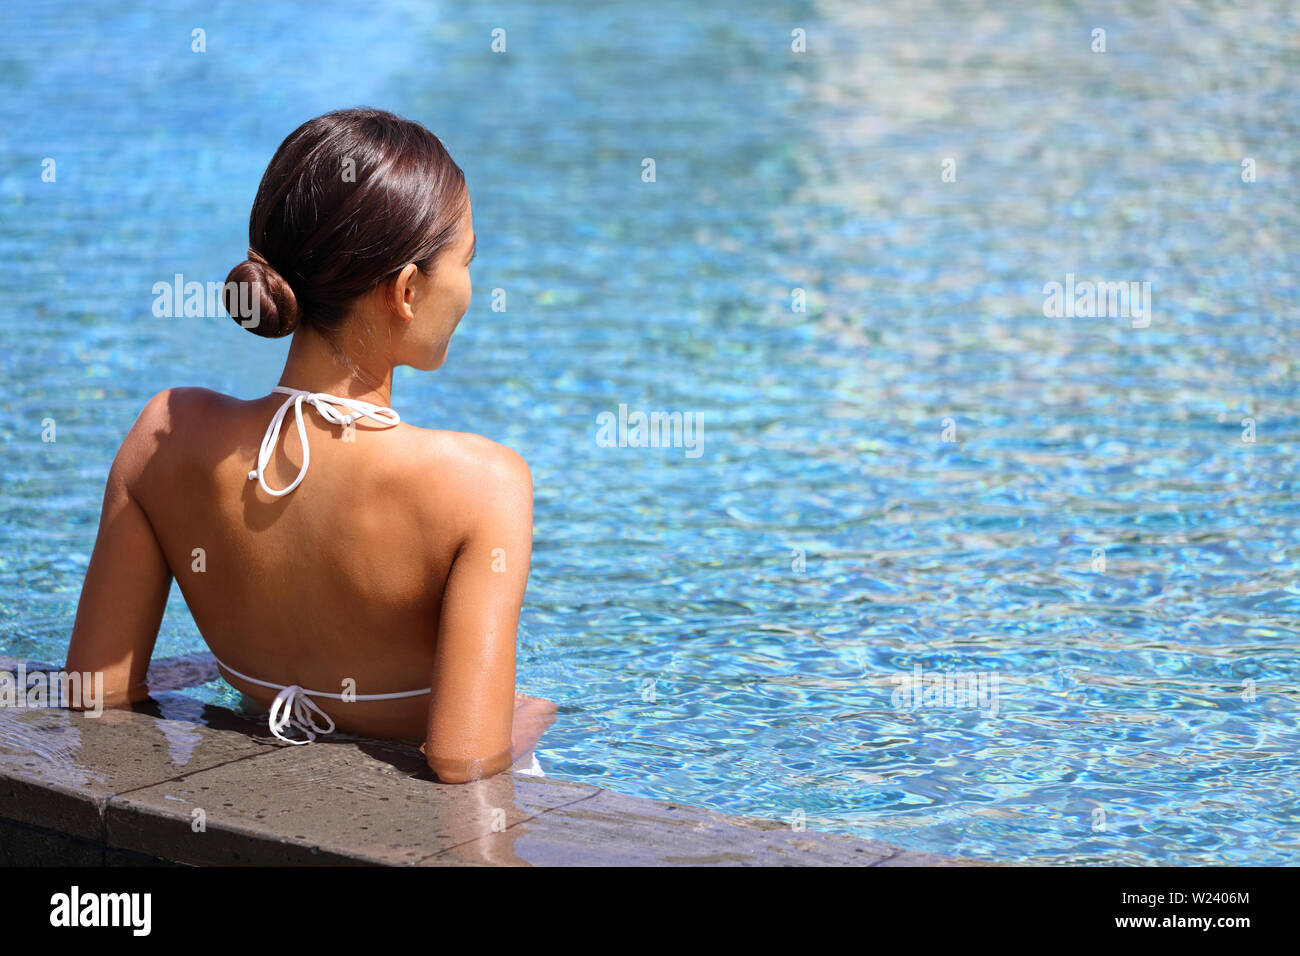 Luxury travel wellness resort bikini woman relaxing in swimming pool. Hydrotherapy spa retreat from behind on side of infinity pool looking away at blue water copyspace. Relaxation vacation concept. - Stock Image